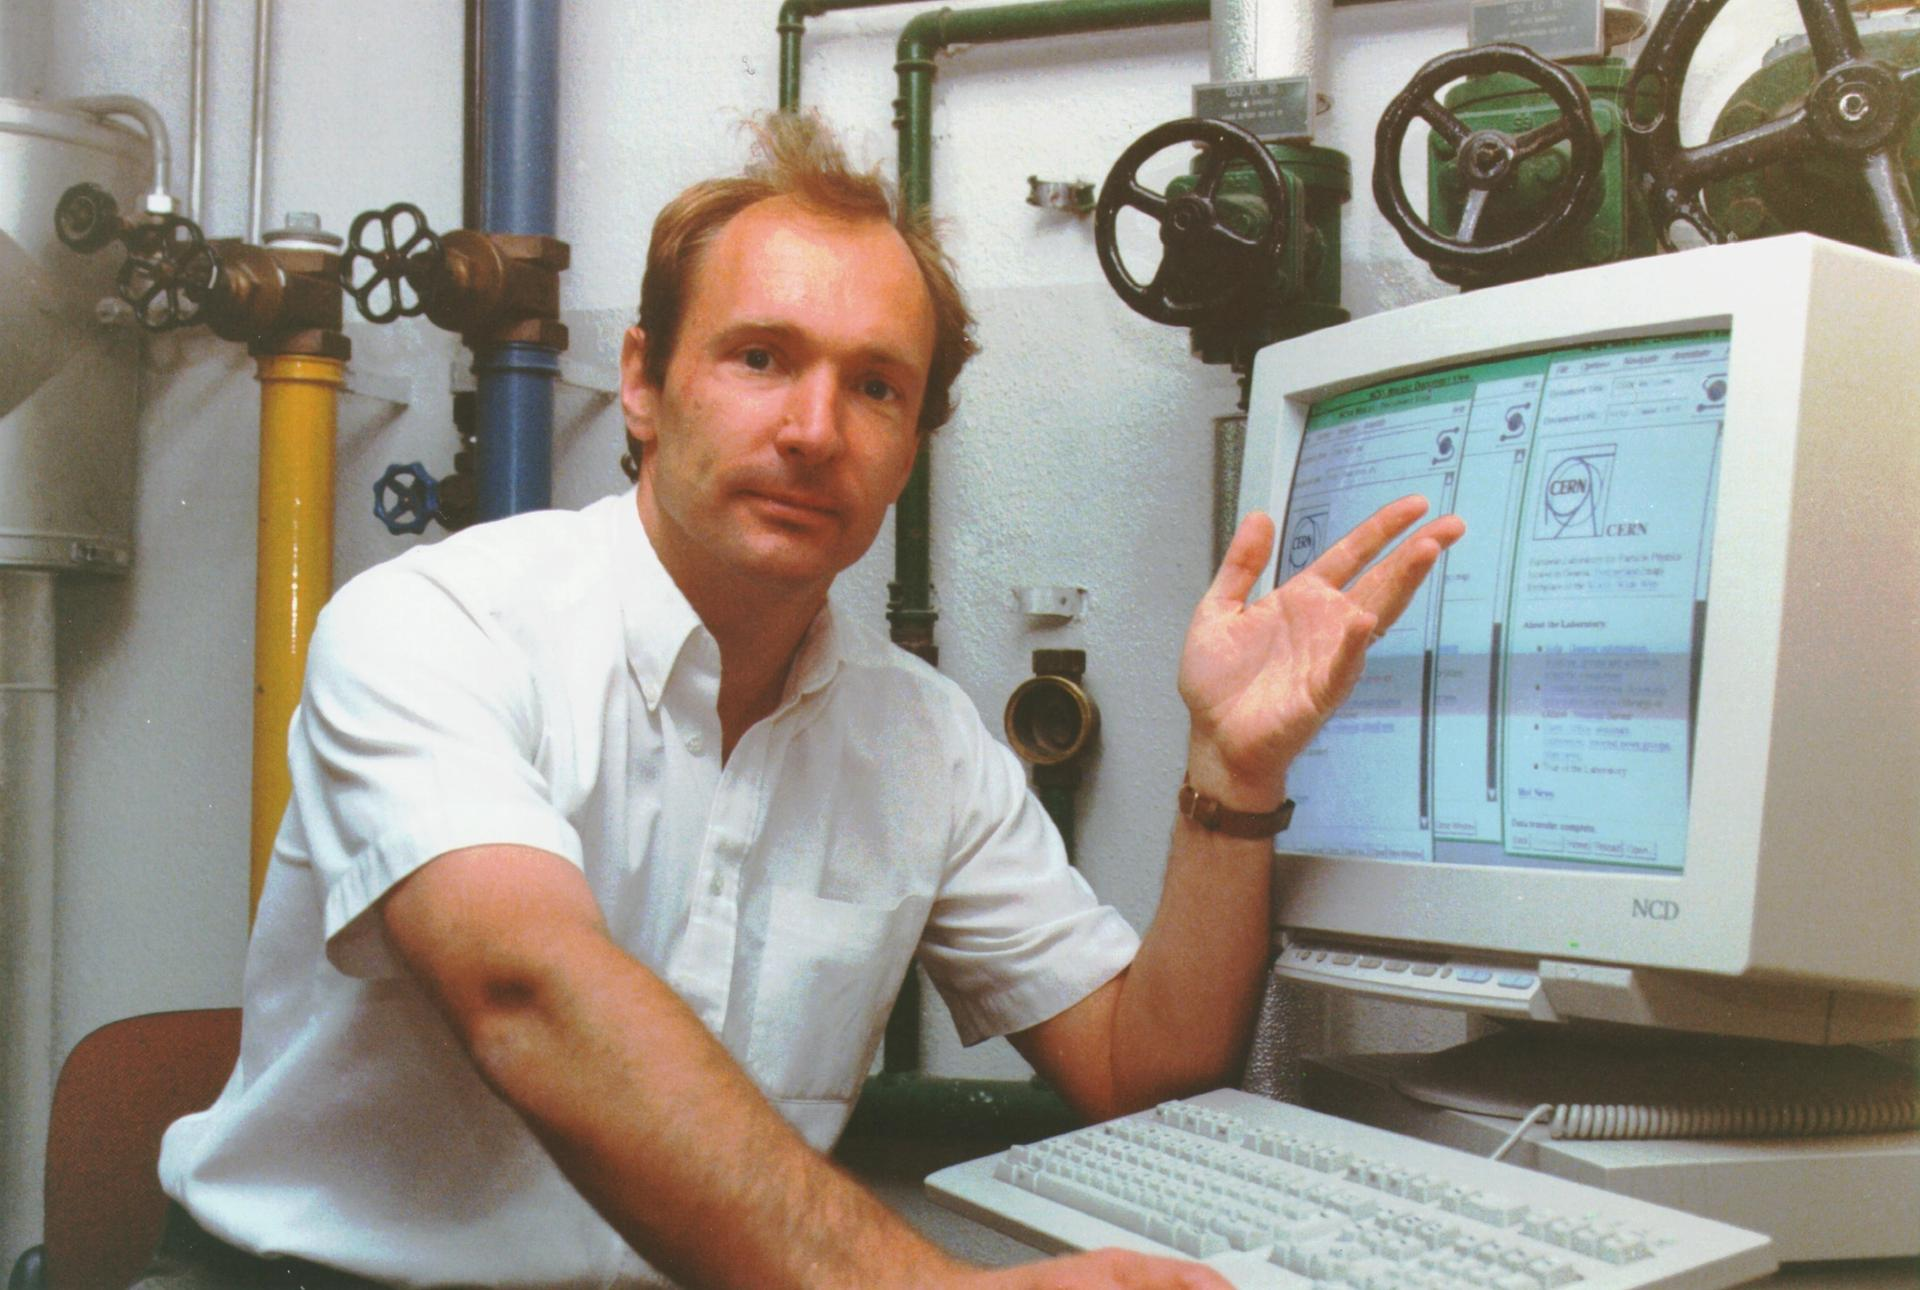 Tim Berners-Lee, inventor of the world wide web, in 1989 Courtesy of Sotheby's